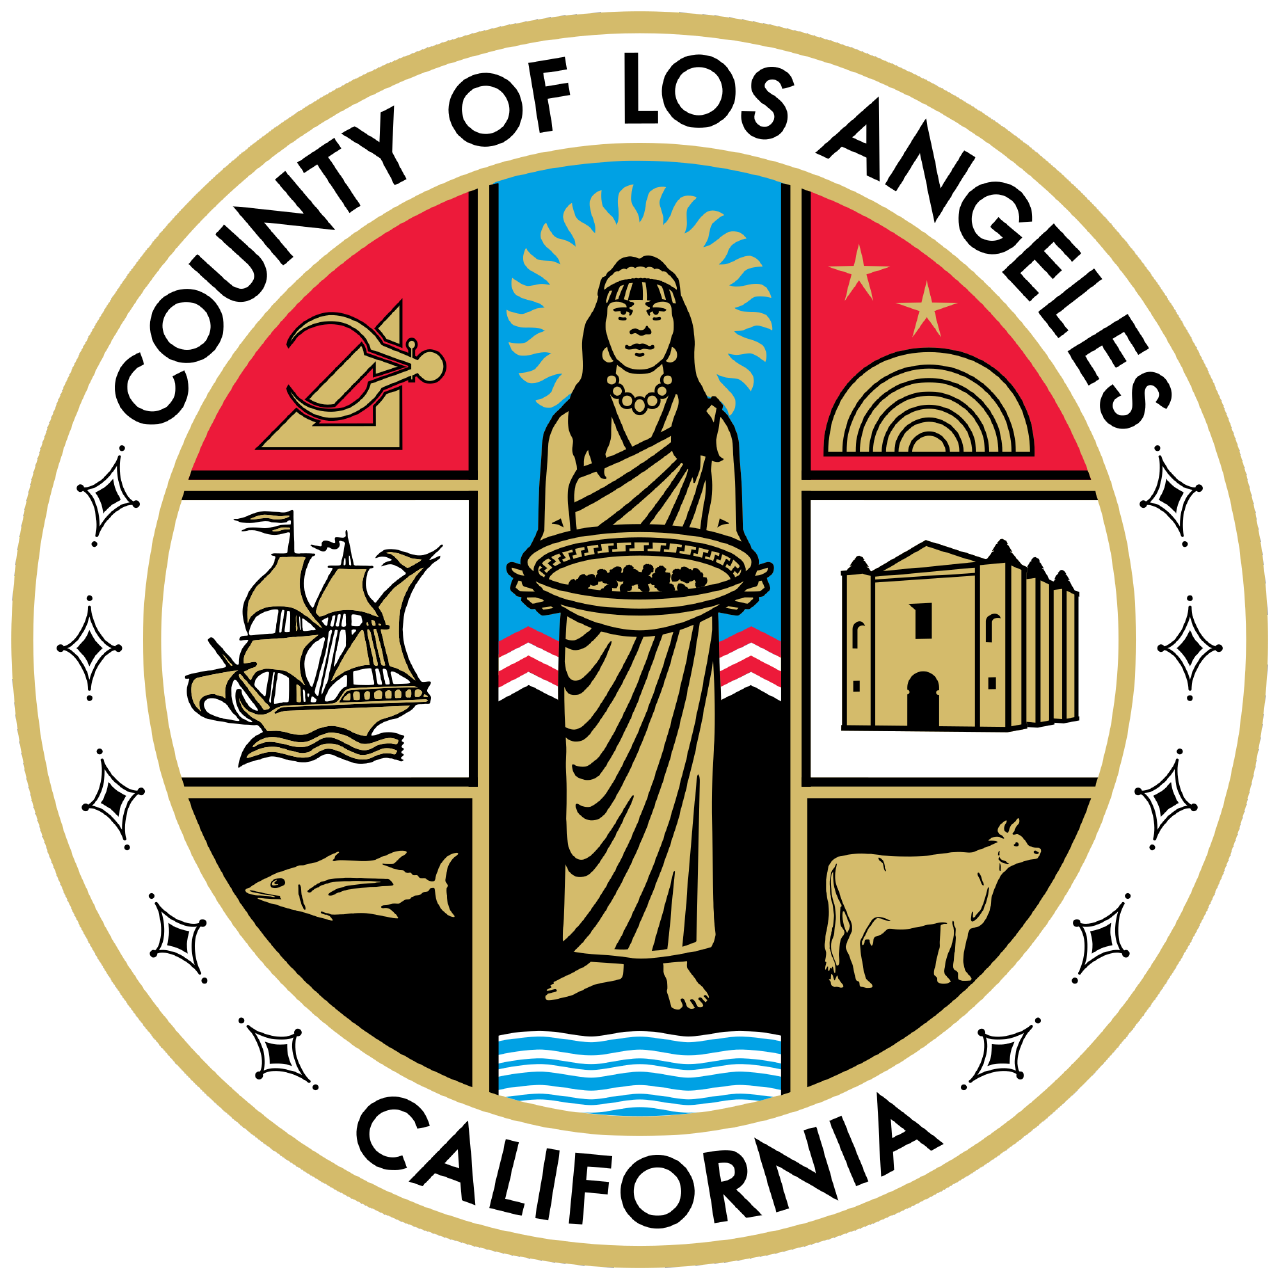 Seal of County of  Los Angeles